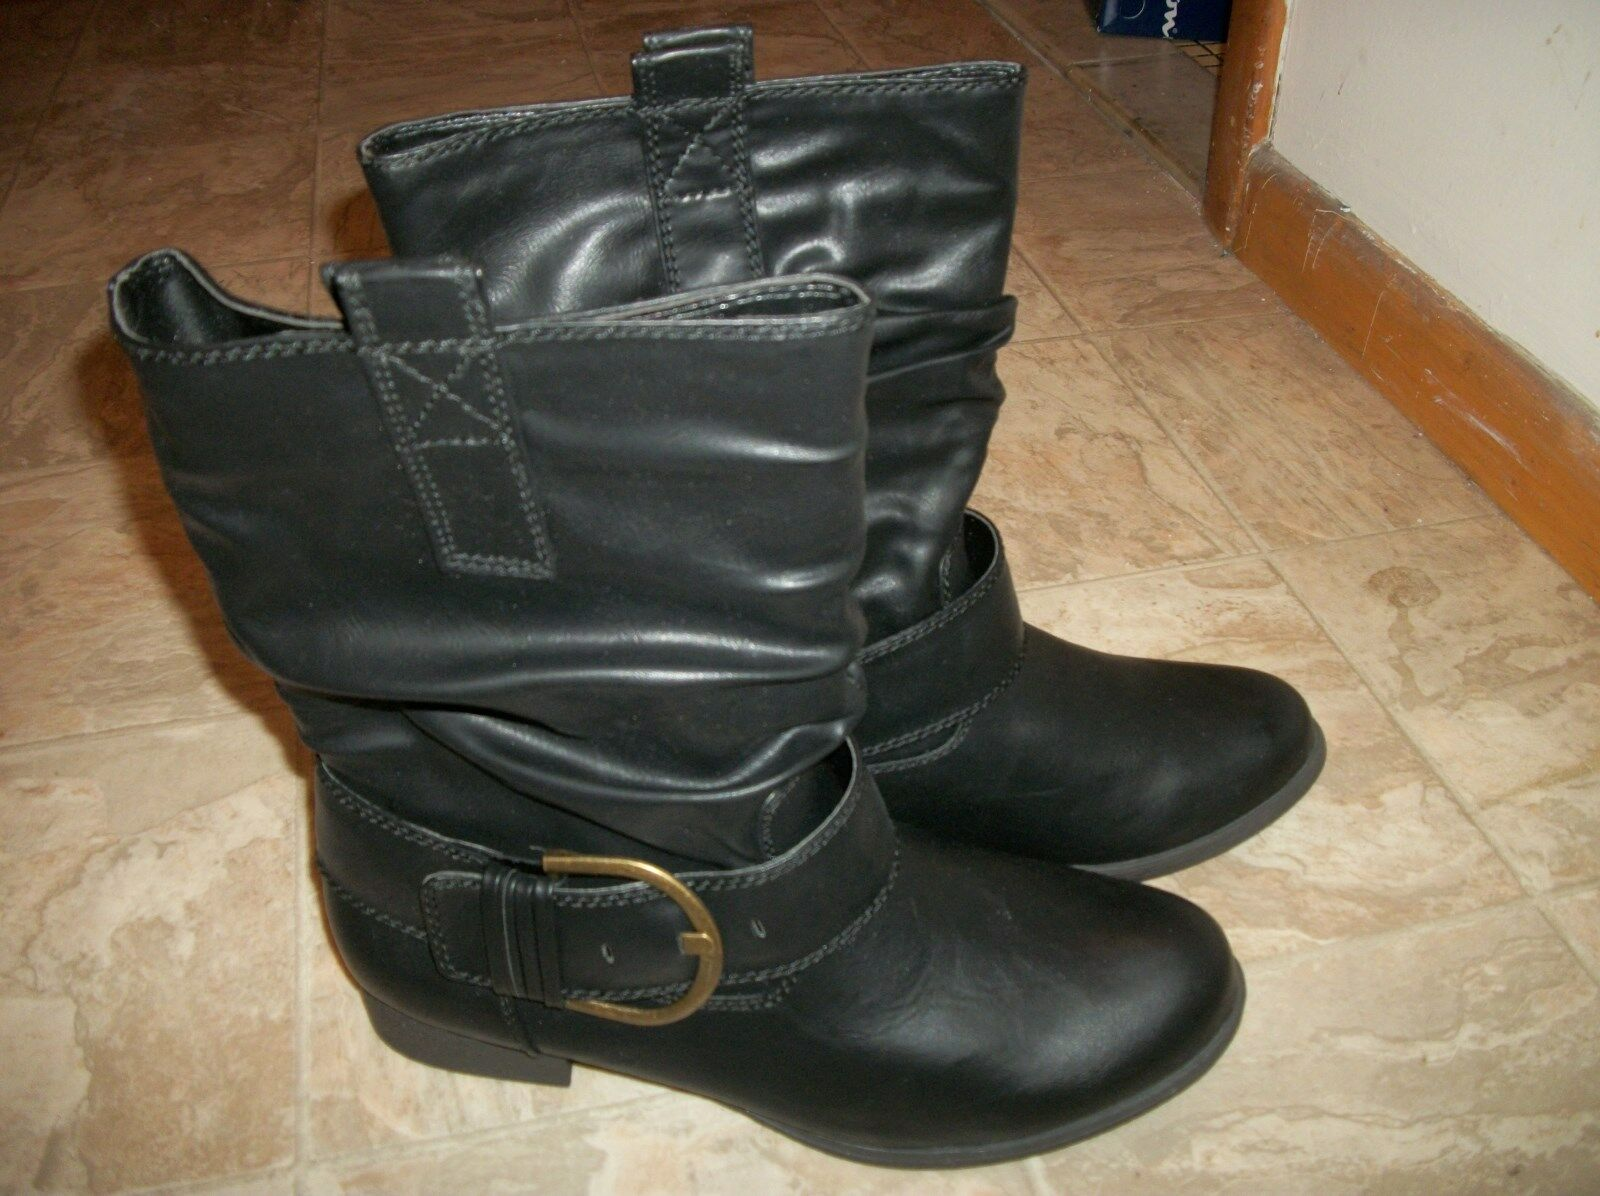 NEW BRASH SHORT PACEY PACEY PACEY BOOTS W  BUCKLE  BLACK OR BROWN WOMEN'S SHOES SIZE 13 f2c183